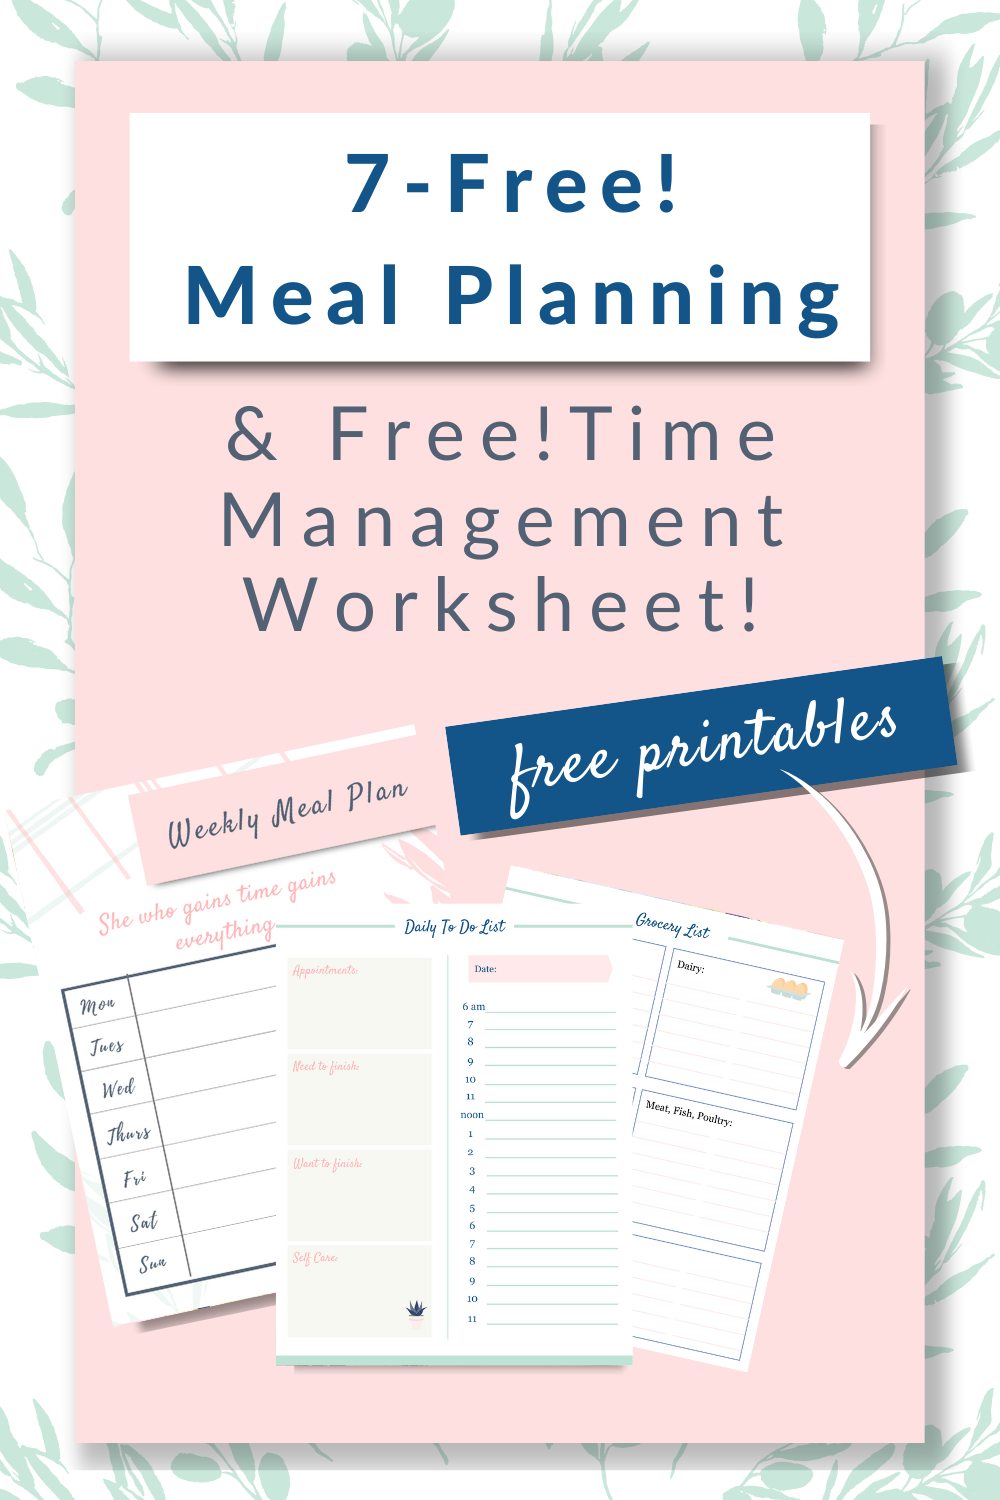 Free! Meal Planning & Daily Productivity Planner in 2020